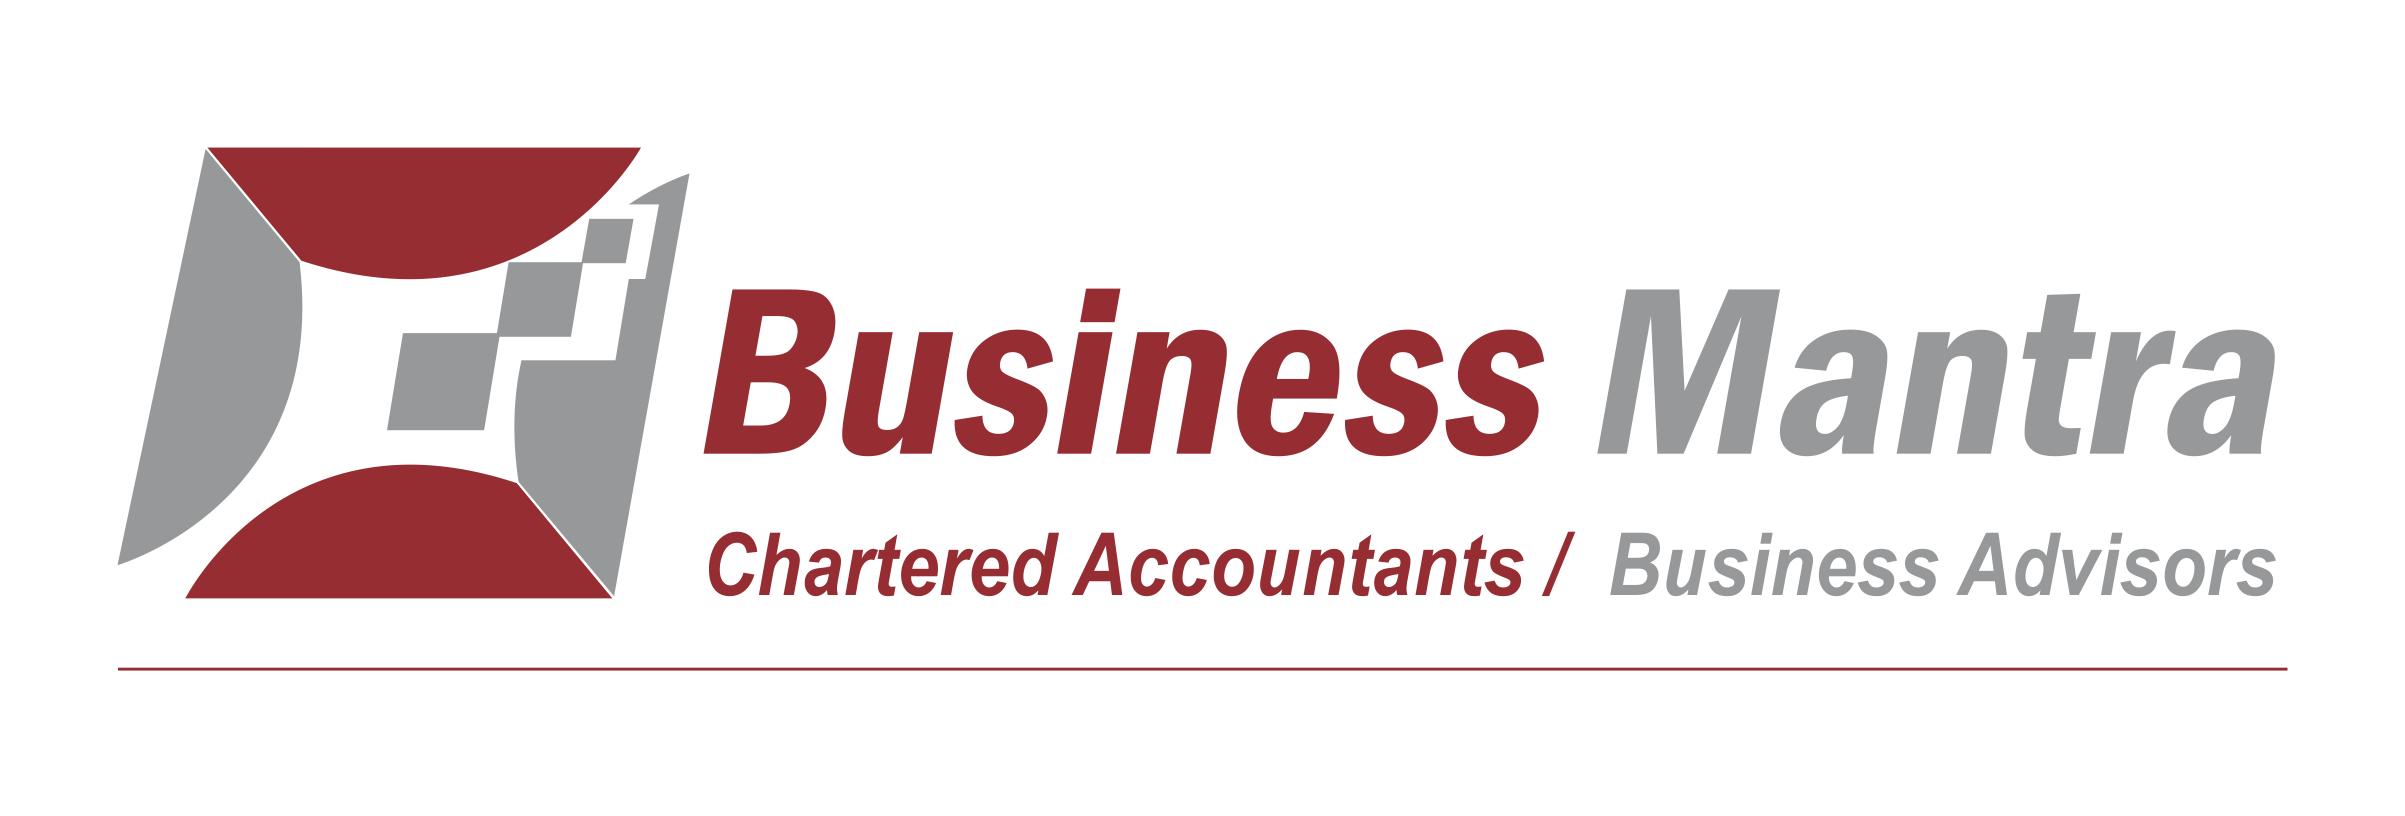 Business Mantra - Accountants In Perth